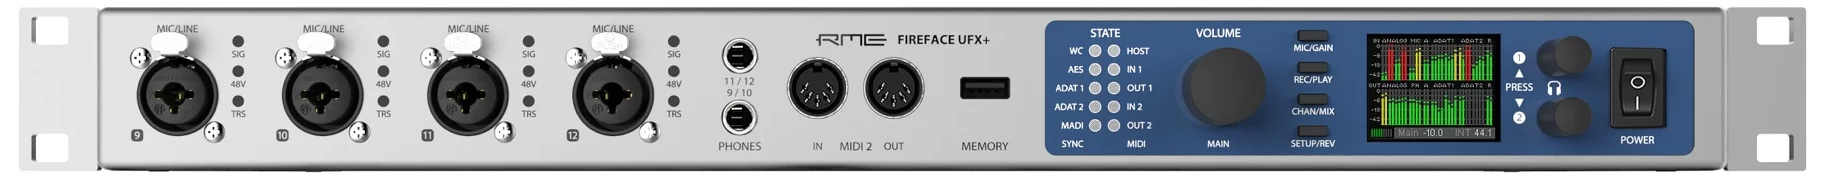 کارت صدا آر ام ای RME Fireface UFX PLUS Thunderbolt Audio Interface